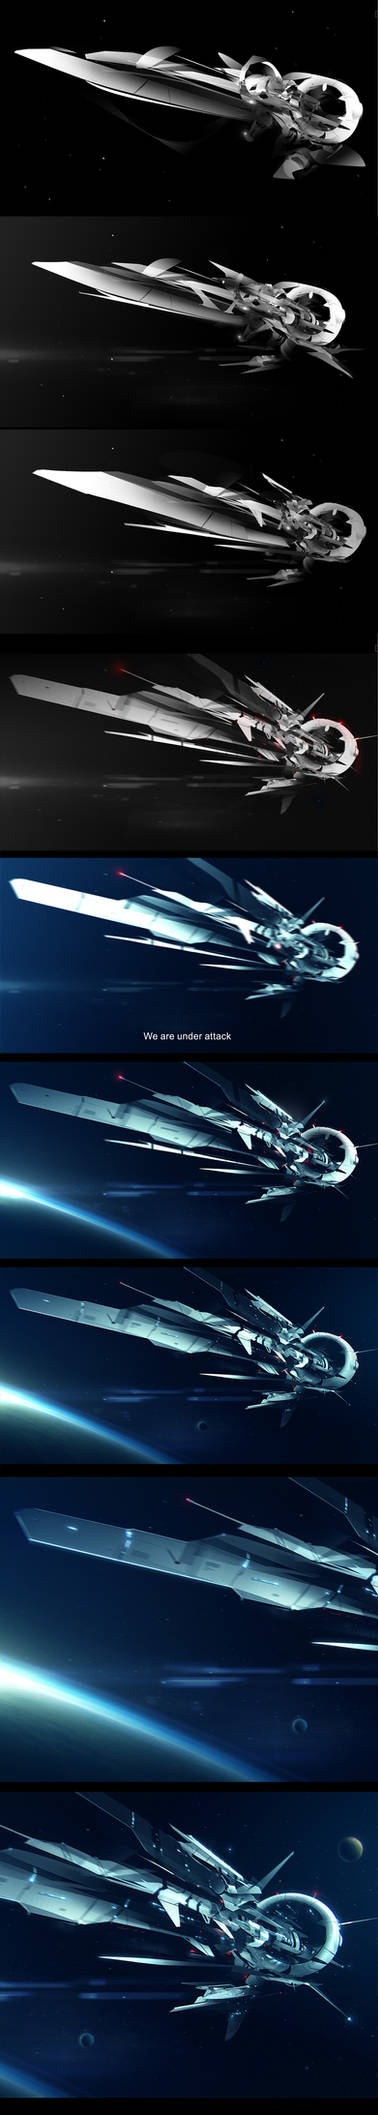 Making of Space journey